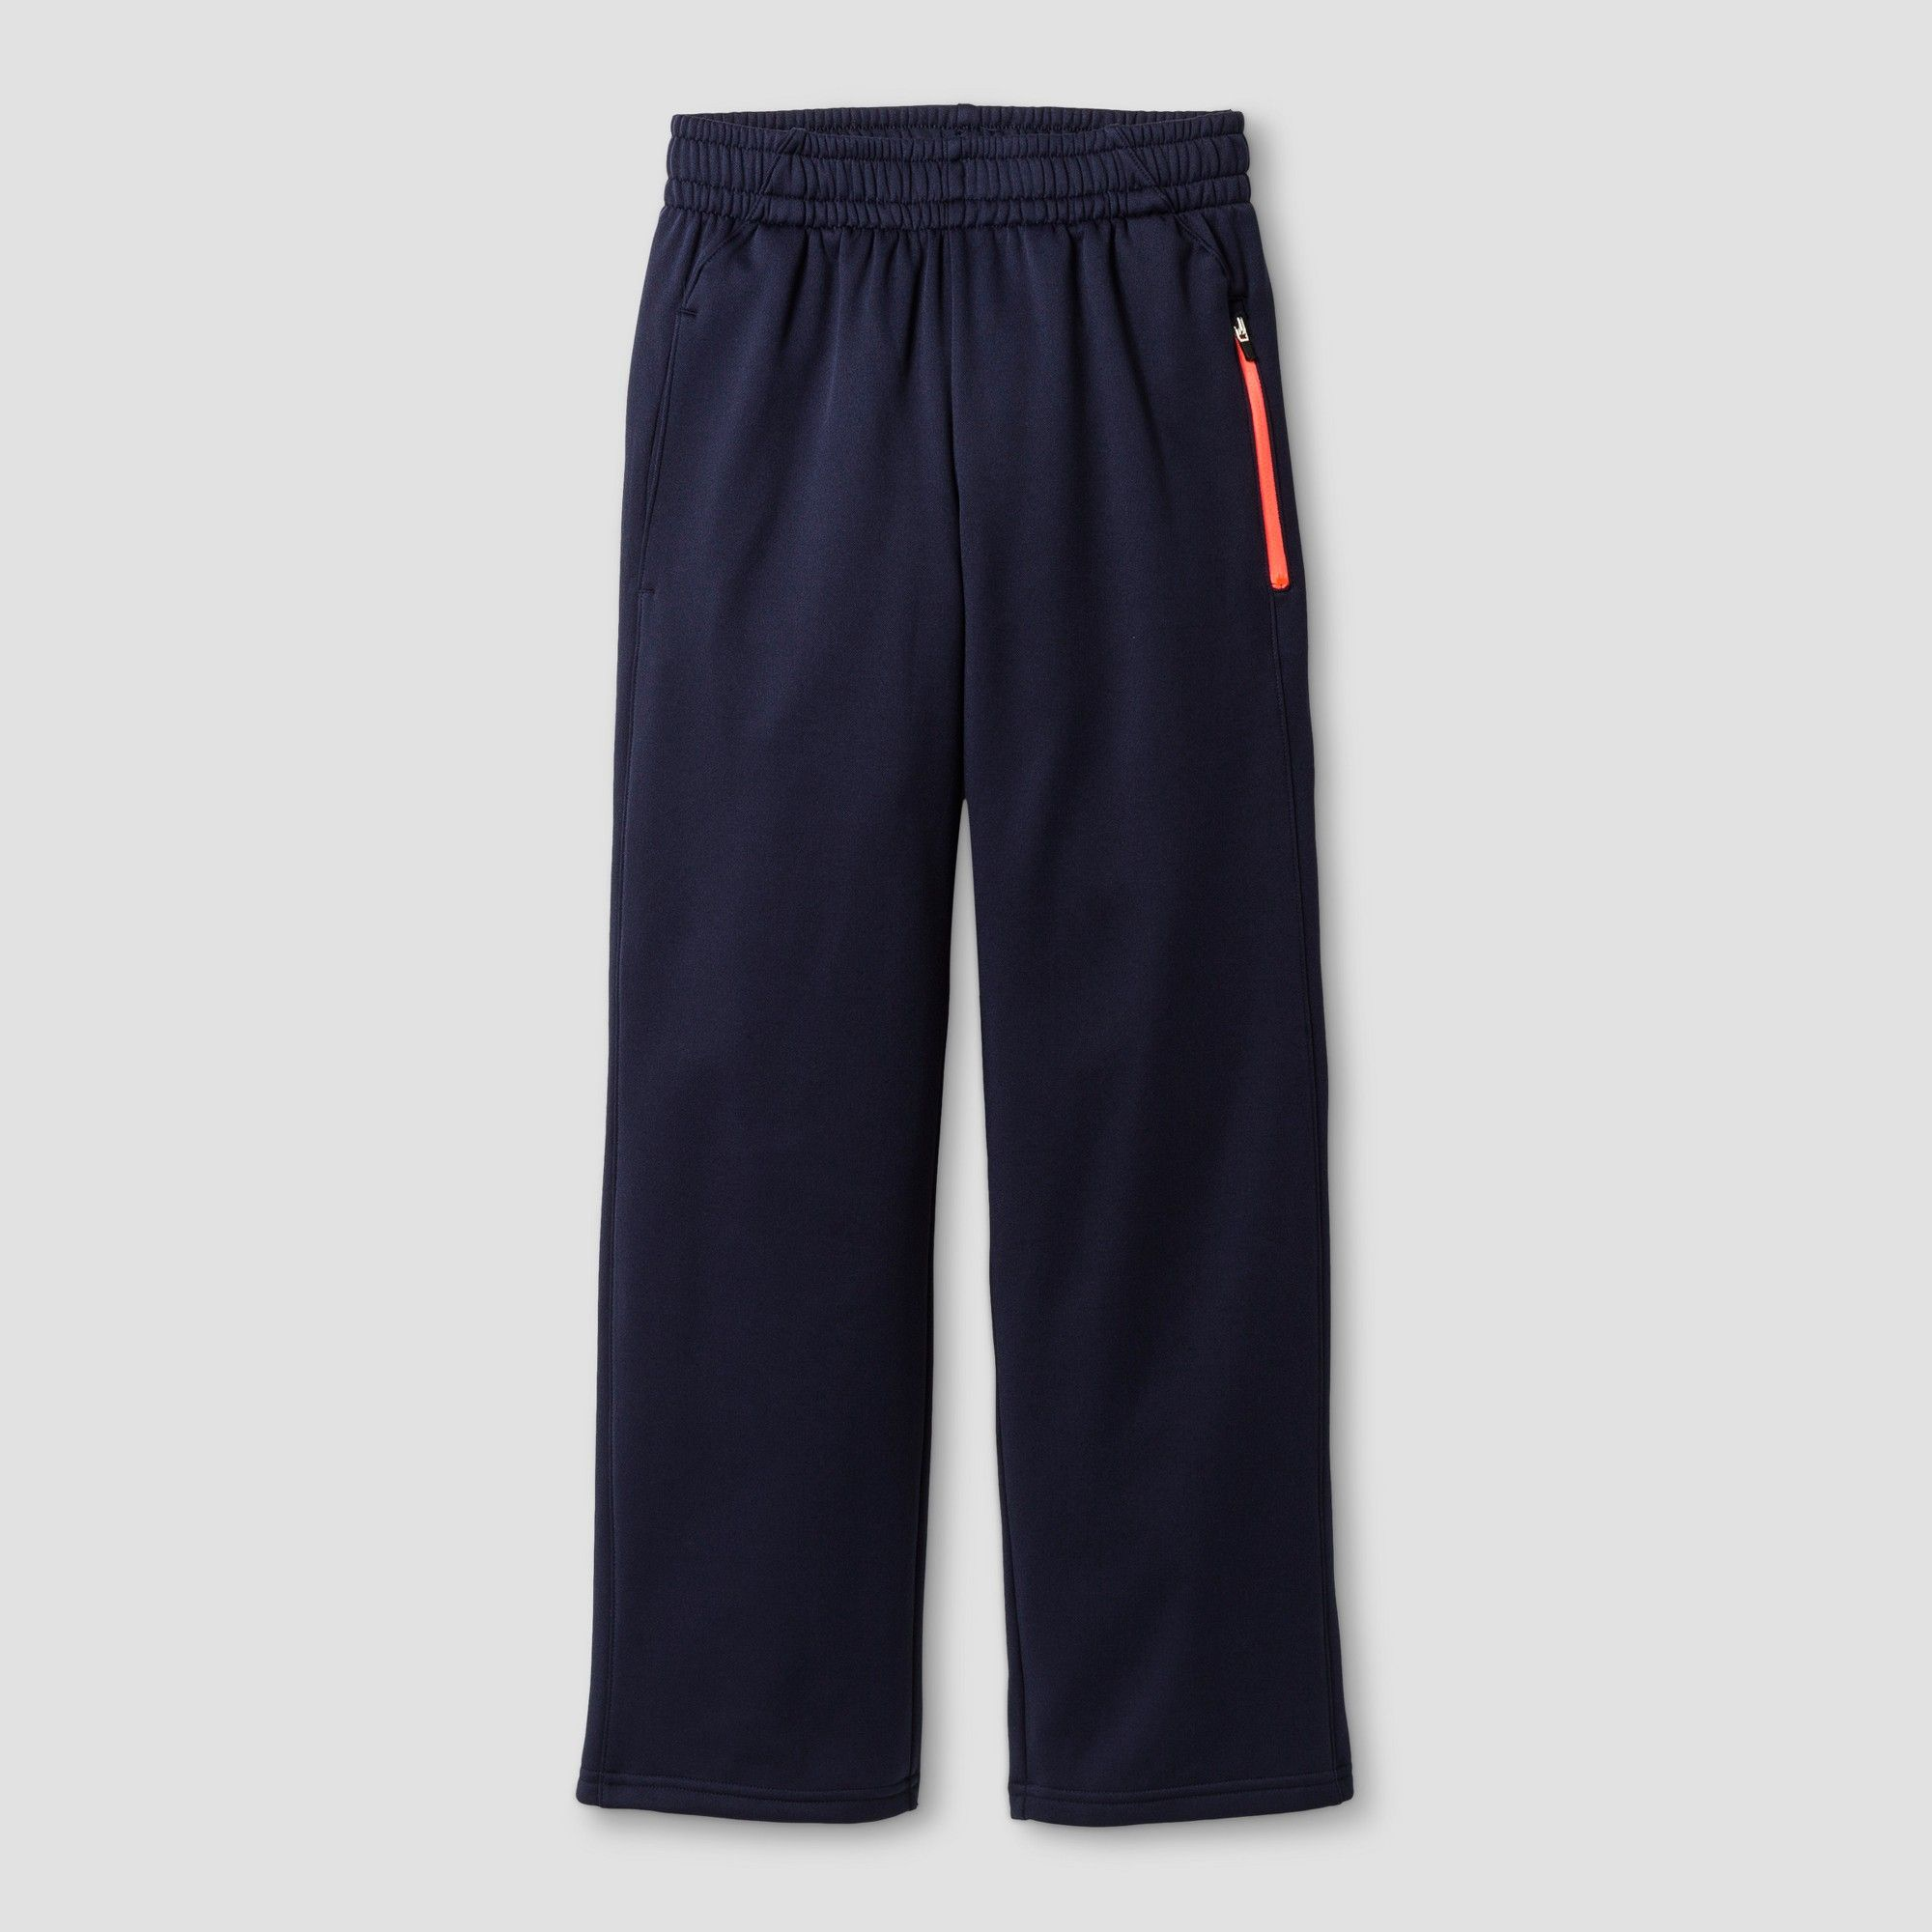 4d8b836528f5 Boys  Tech Fleece Pants - C9 Champion Navy (Blue) M